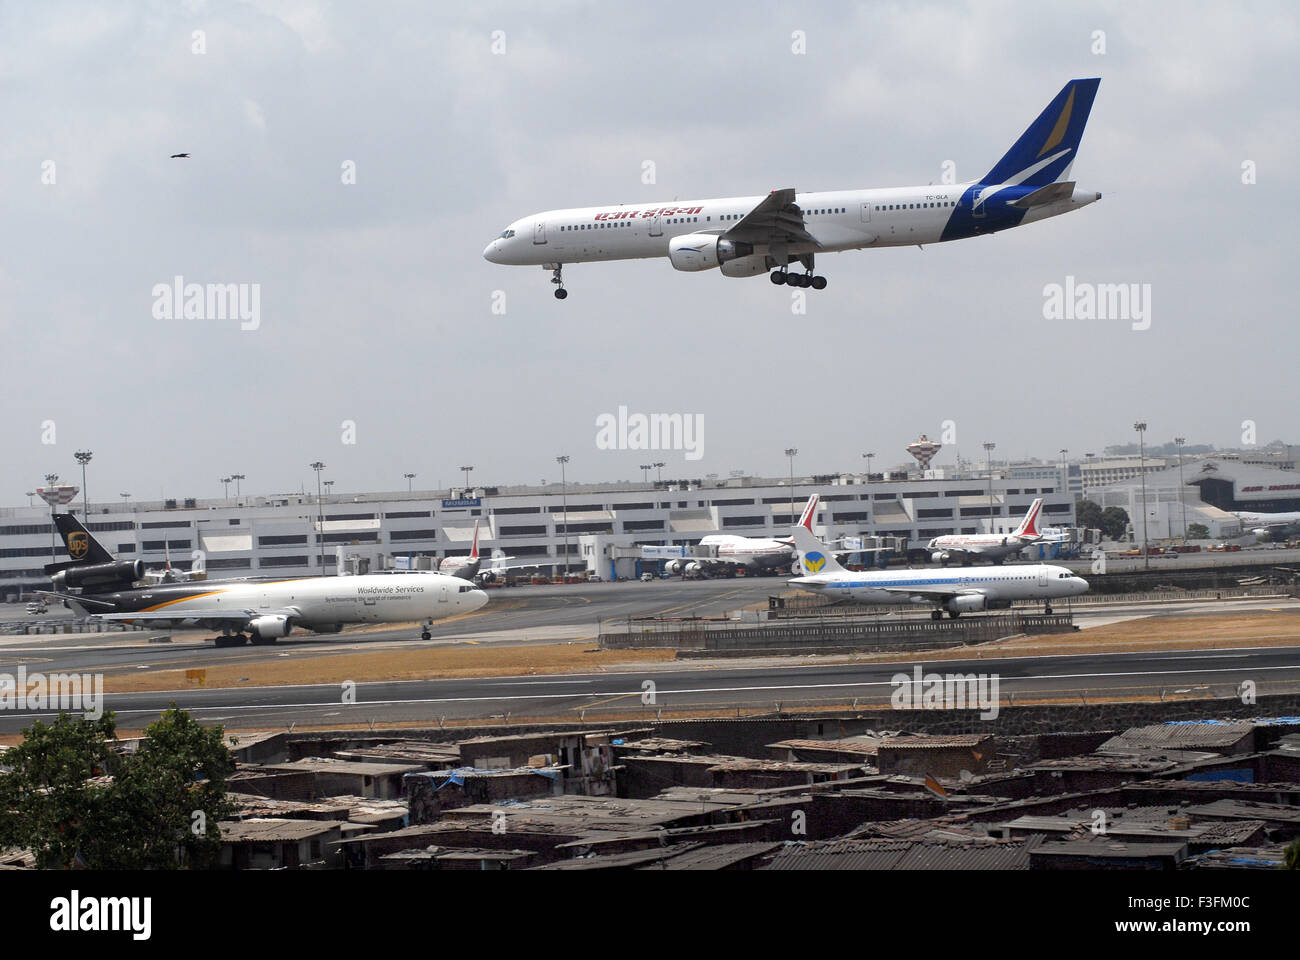 Airlines commercial airliner preparing land Sahar Airport Chatrapati Shivaji International Airport slum airport - Stock Image